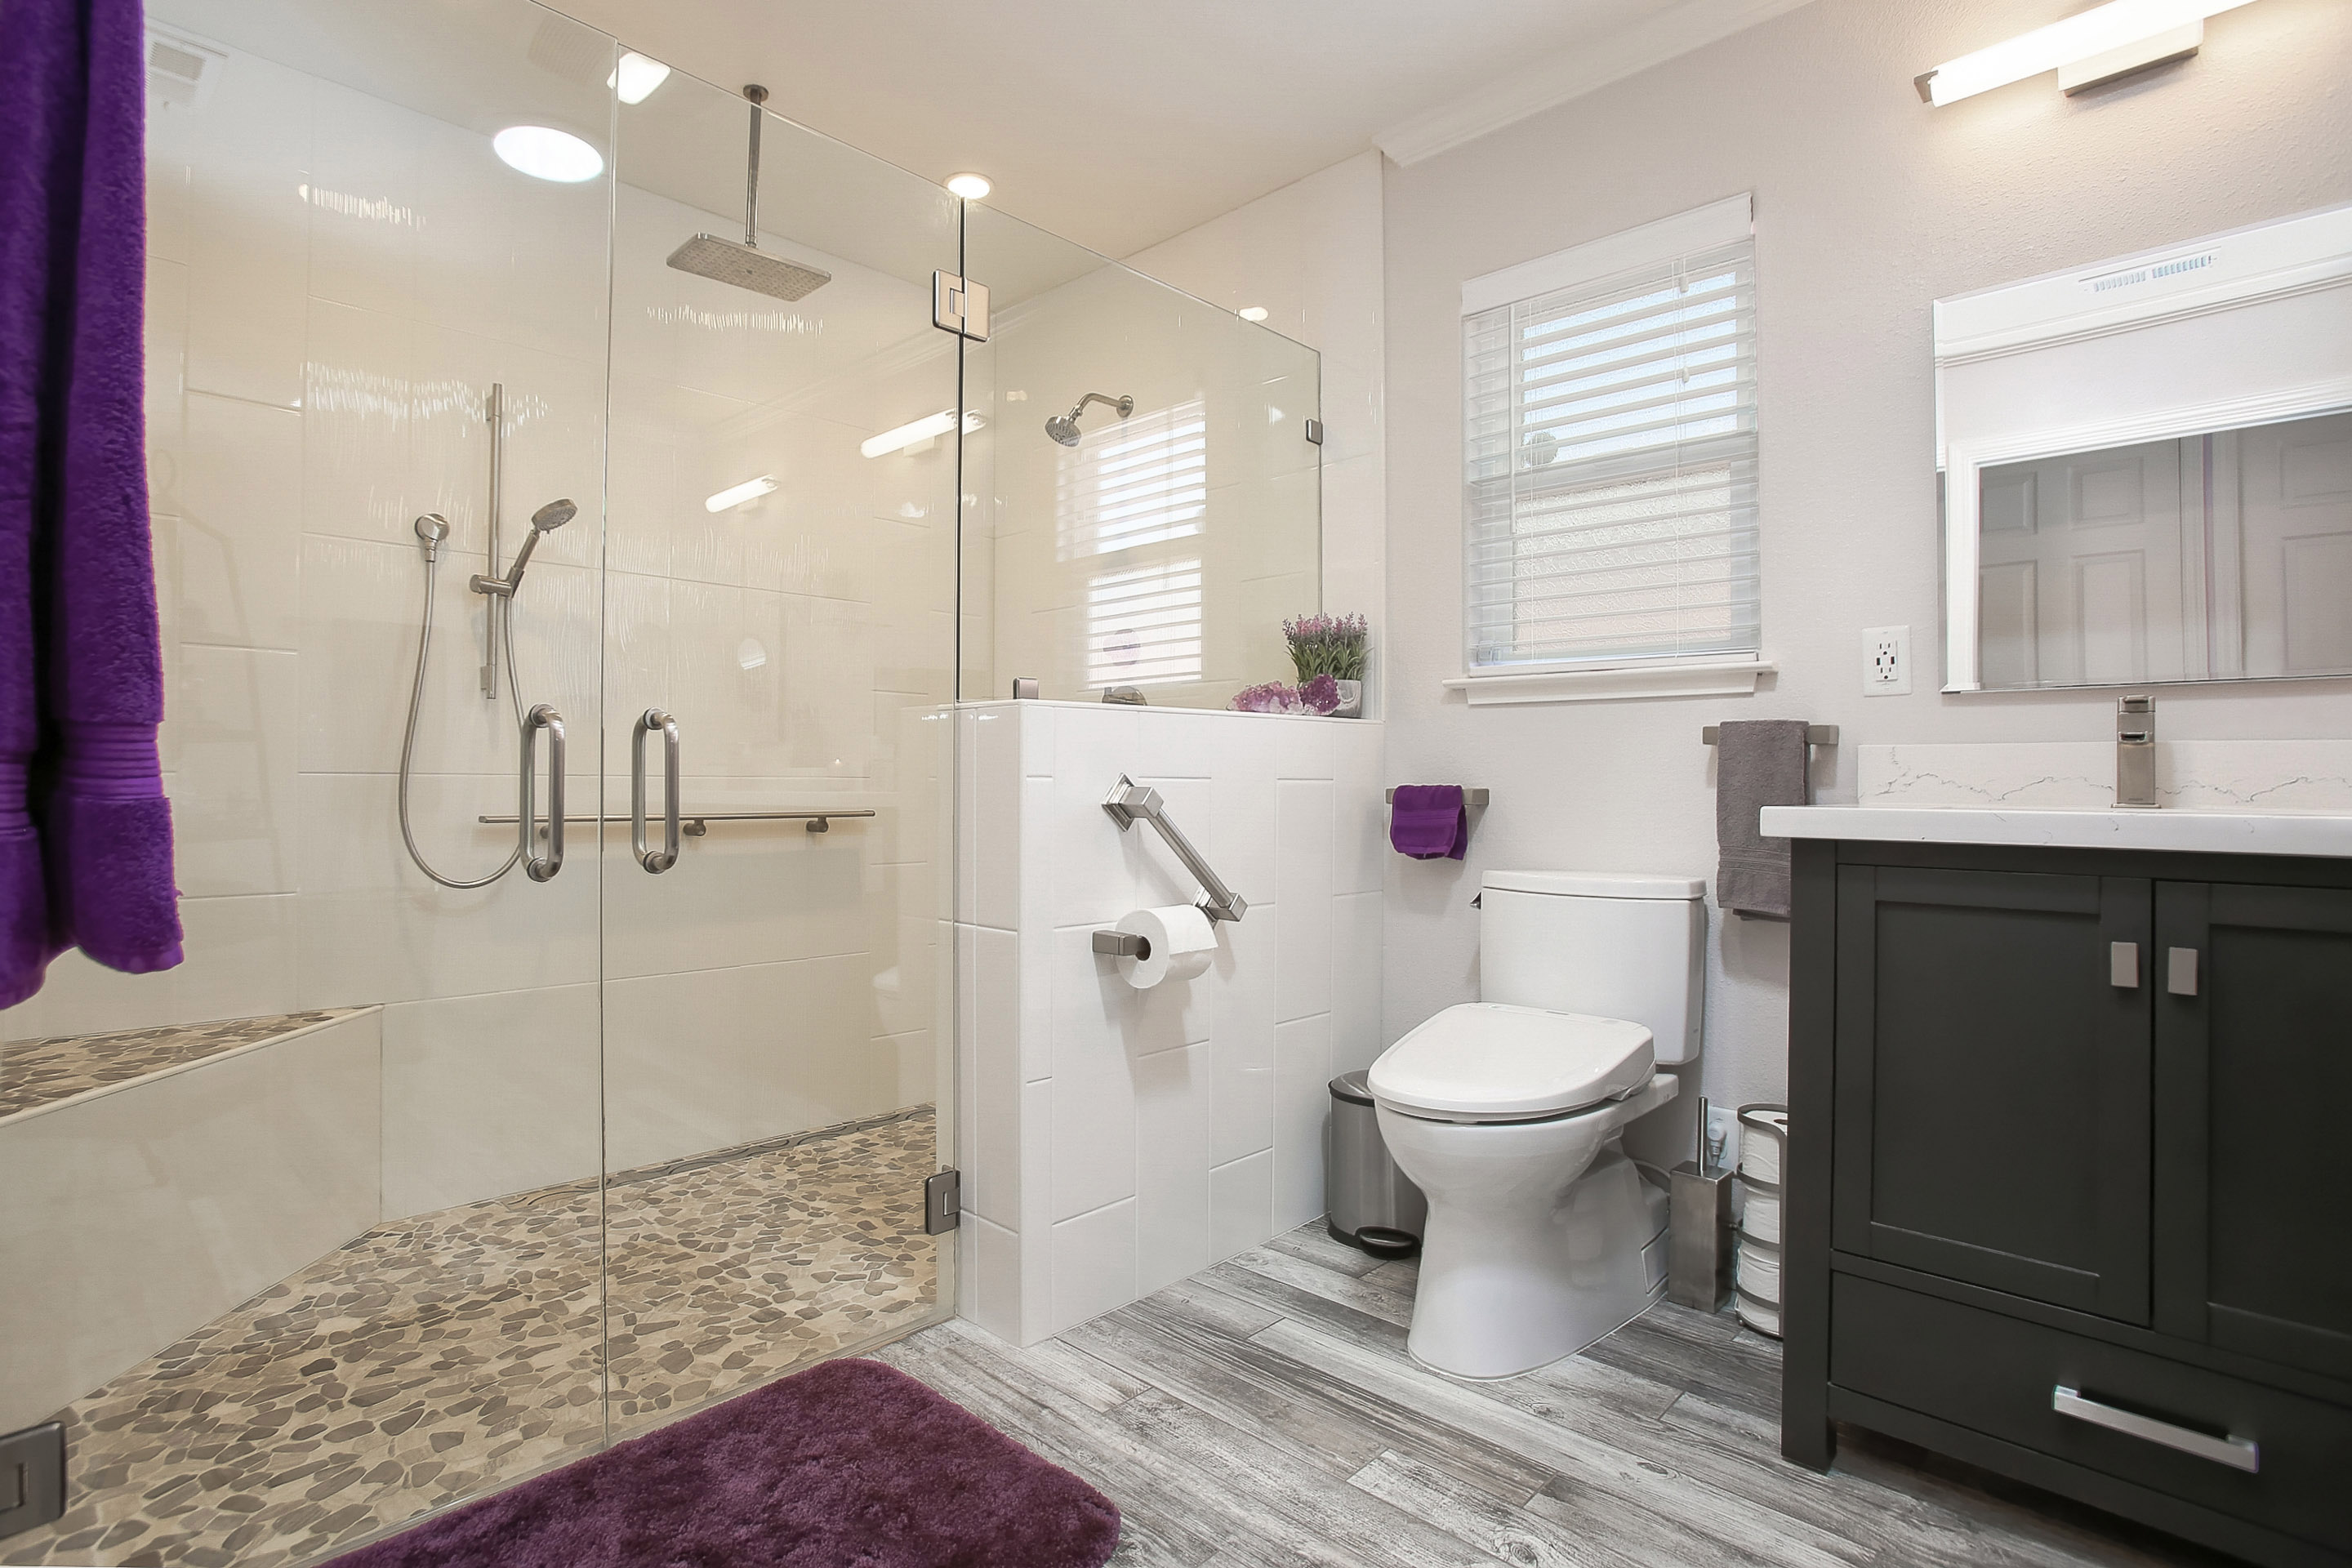 Sizeable walk-in shower with dual show heads.